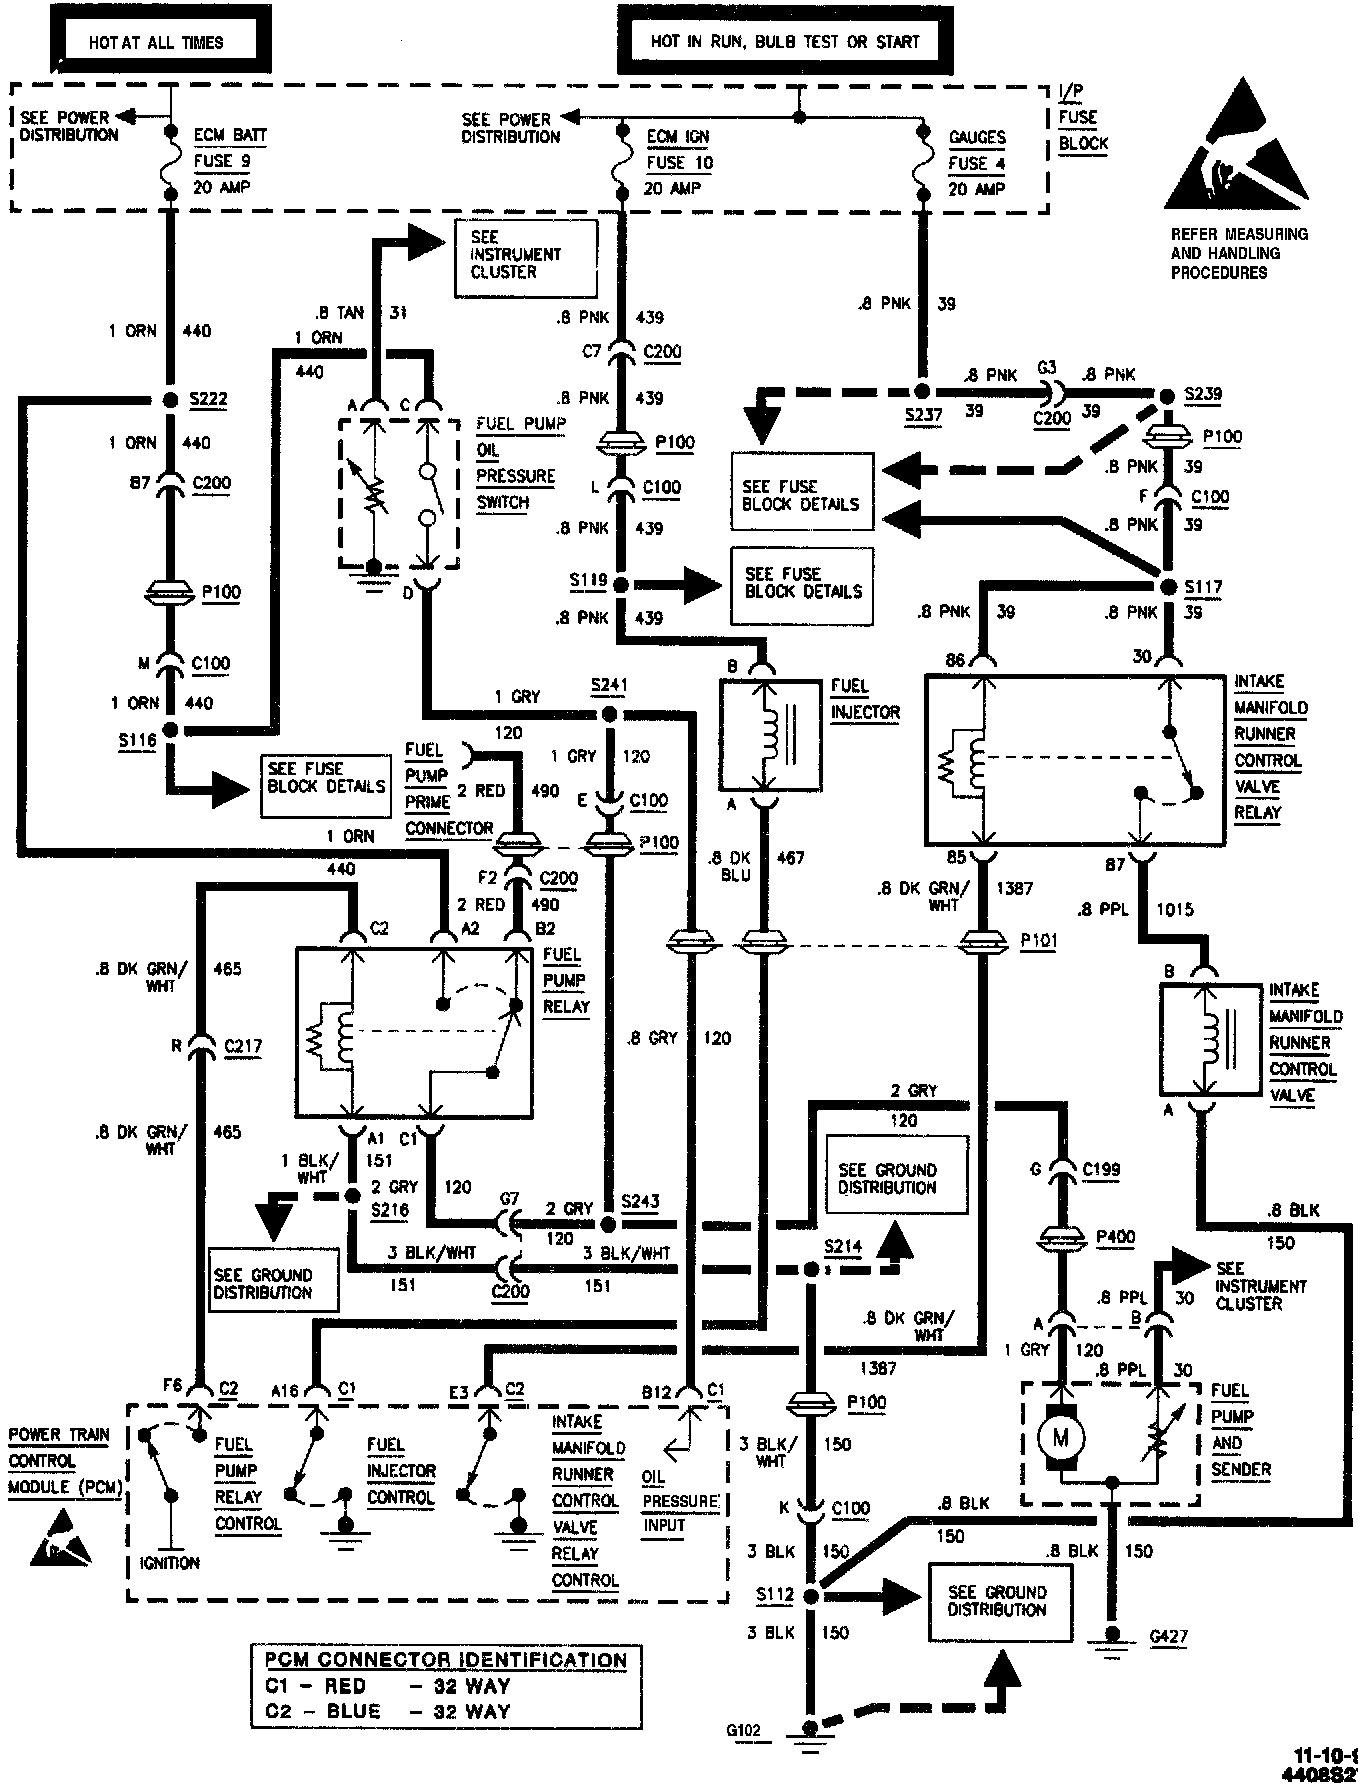 S 10 Truck Wiring Diagram | Wiring Diagram  Colorado Alternator Wiring Diagram on chevy colorado 2005 electrical diagram, 2005 colorado radio wiring, 2005 colorado thermostat replacement, 2005 colorado switch, chevy colorado parts diagram, 2005 colorado fuse box diagram, 2005 colorado engine, 2005 colorado timing, 2005 colorado exhaust diagram, 2005 colorado parts diagram, 2005 colorado accessories, 2005 colorado headlights, 2005 colorado frame, 2005 colorado starter, 2005 colorado fan belt, 2005 colorado radio replacement, 2005 colorado relay, 2005 colorado electrical wiring, 2005 gmc canyon engine diagram, 2005 colorado chassis,